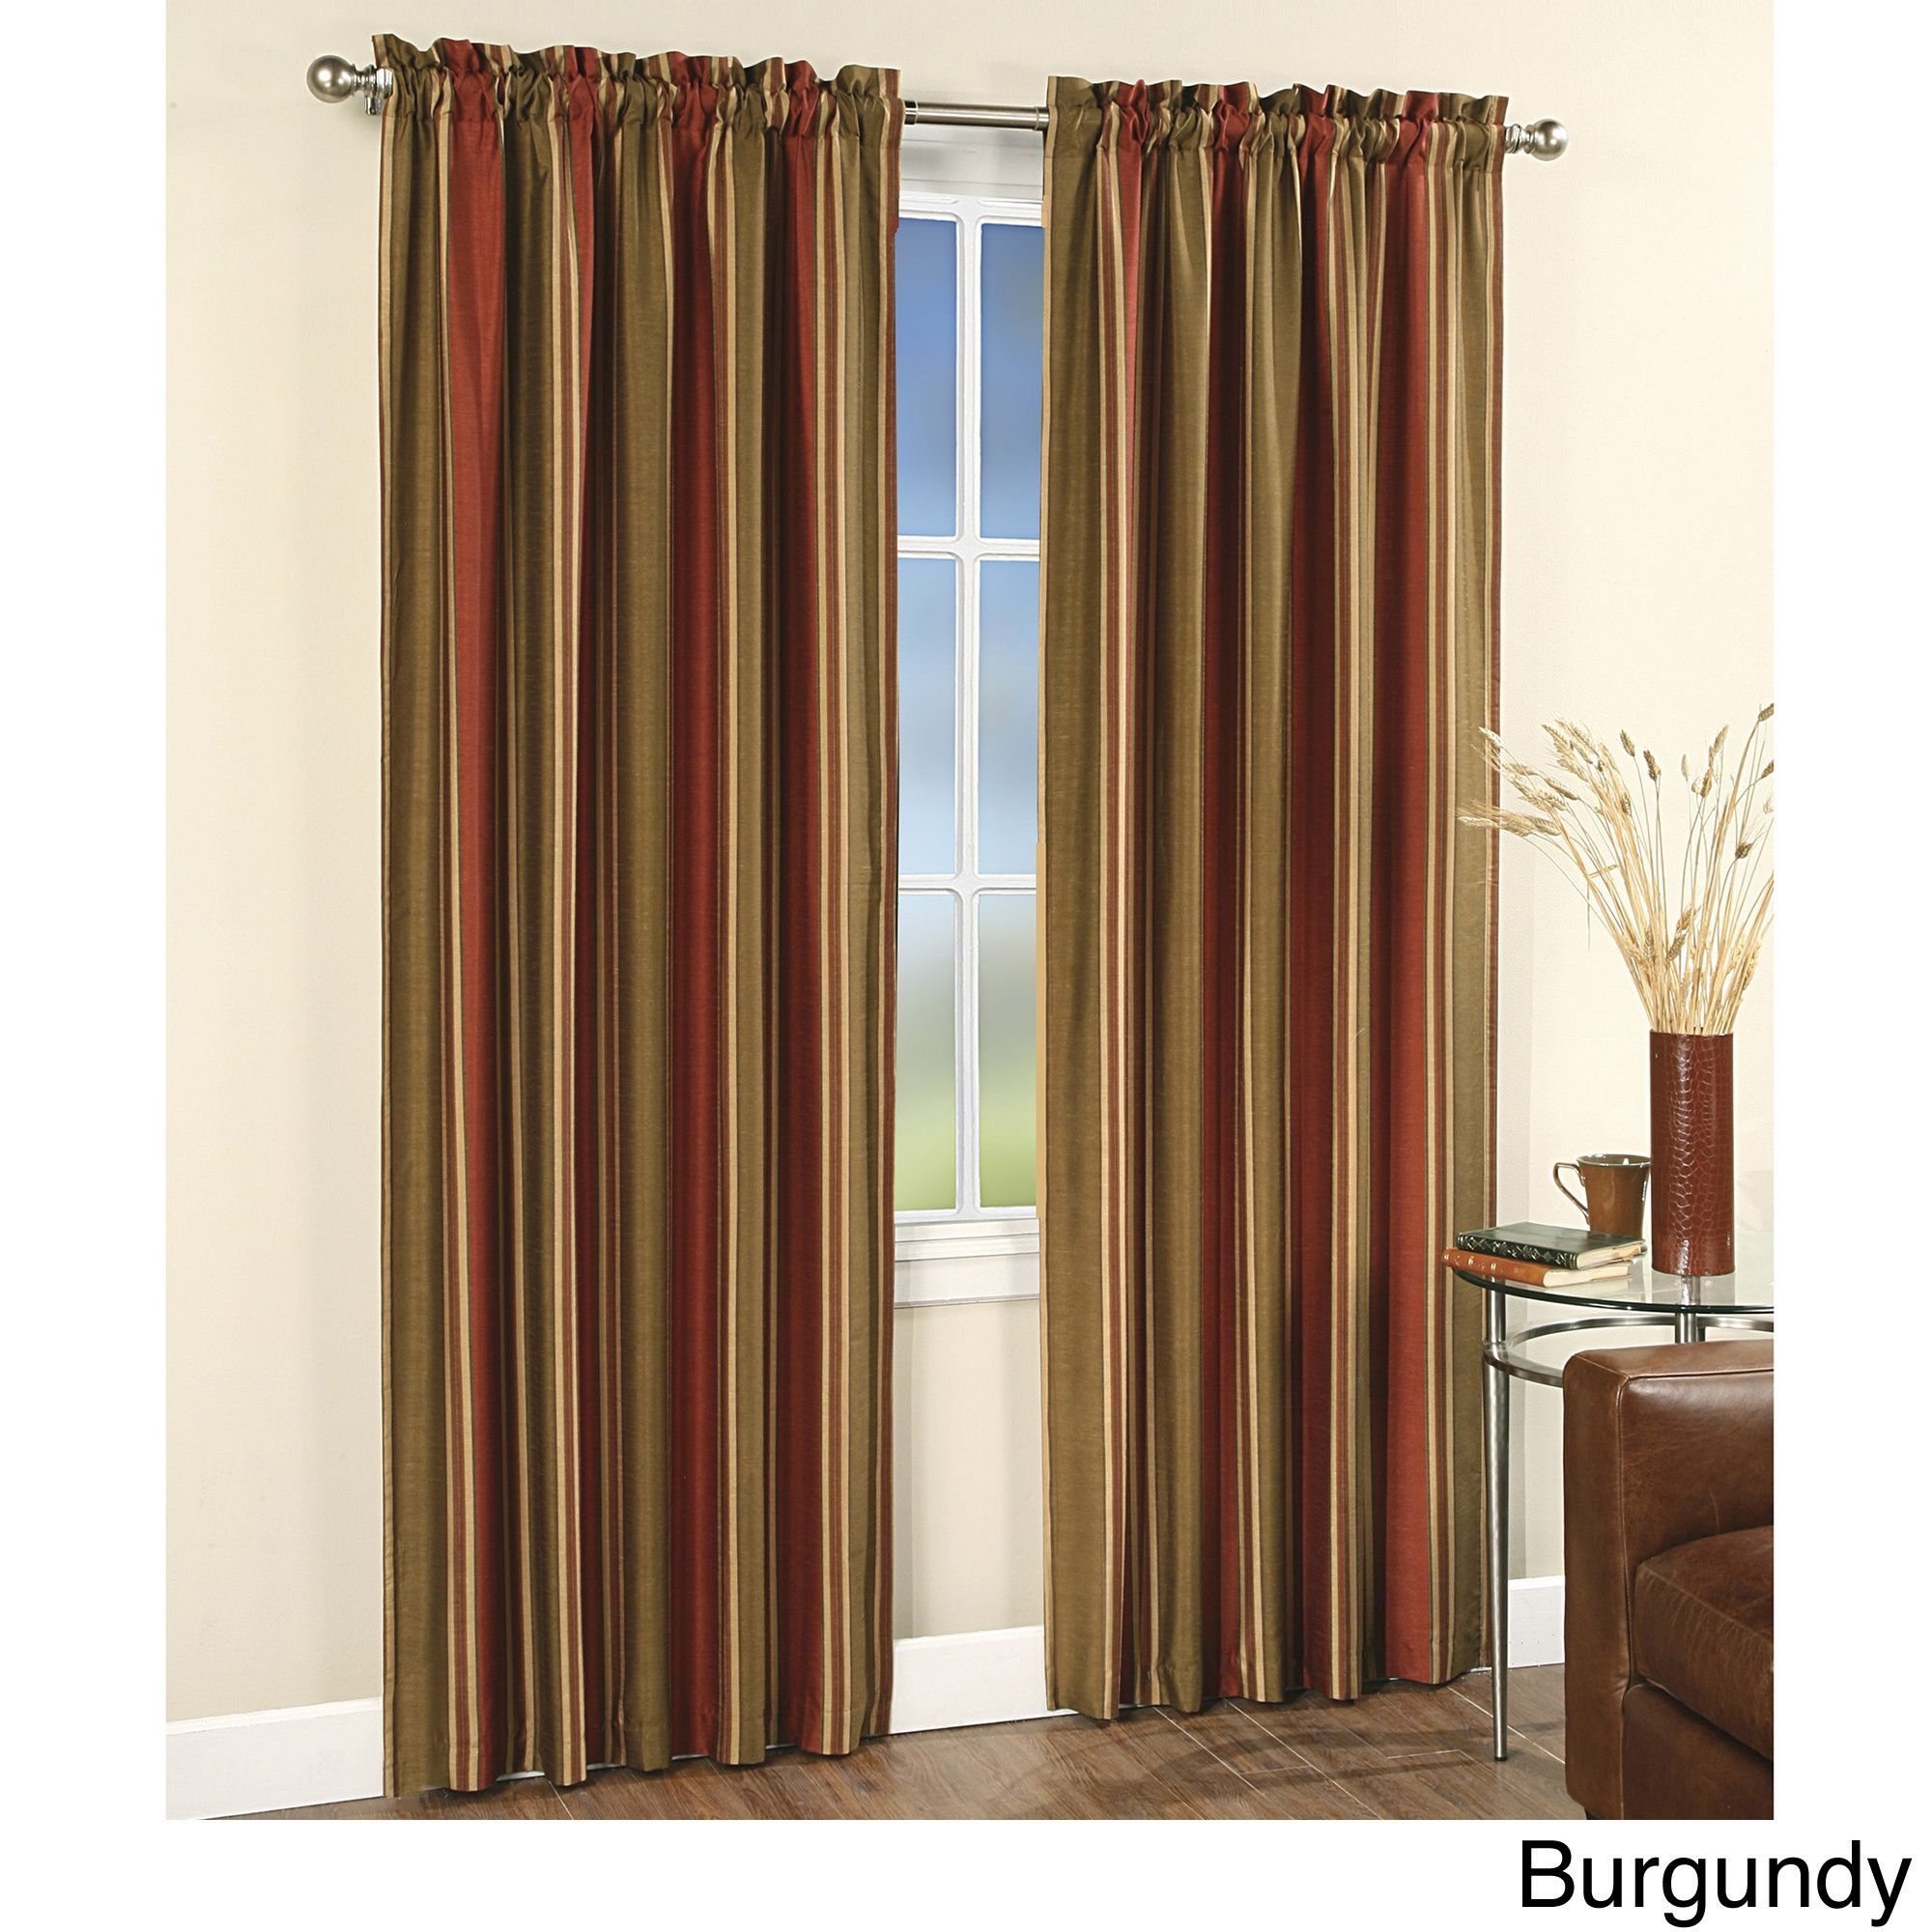 These Fully Lined Graduated Vertical Striped Window Curtain Panels Are